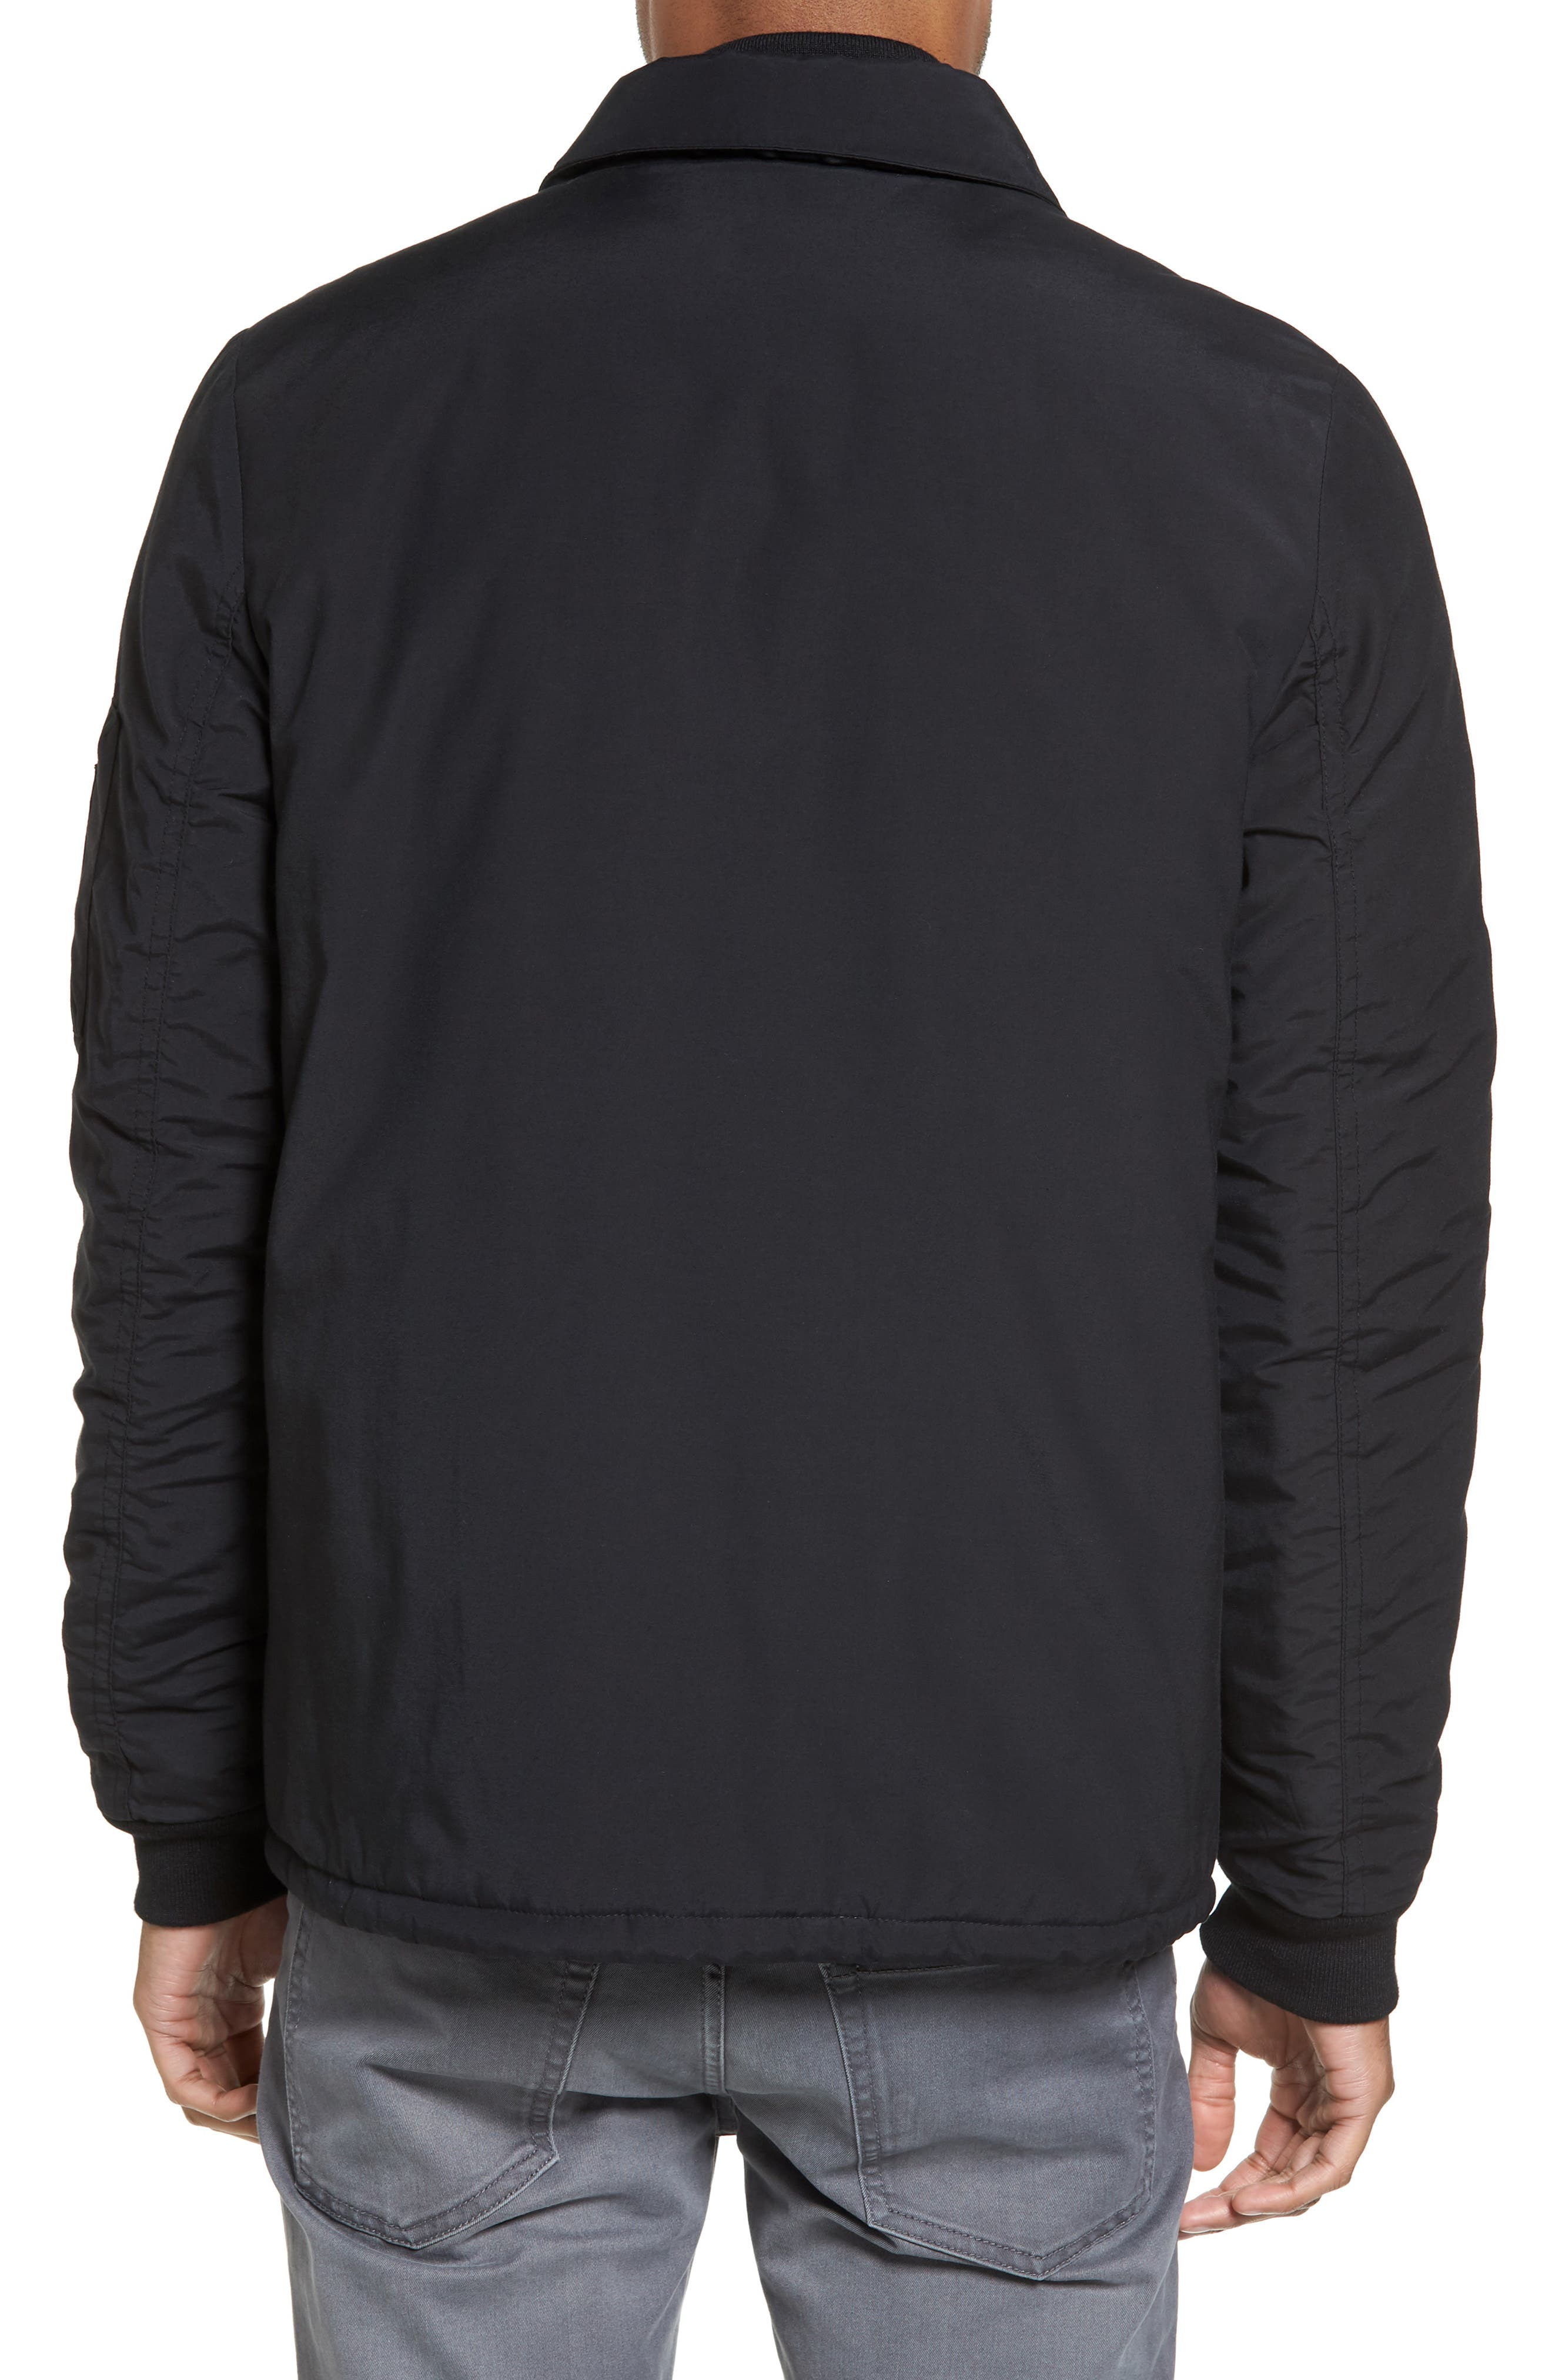 Collared Bomber Jacket,                             Alternate thumbnail 2, color,                             001